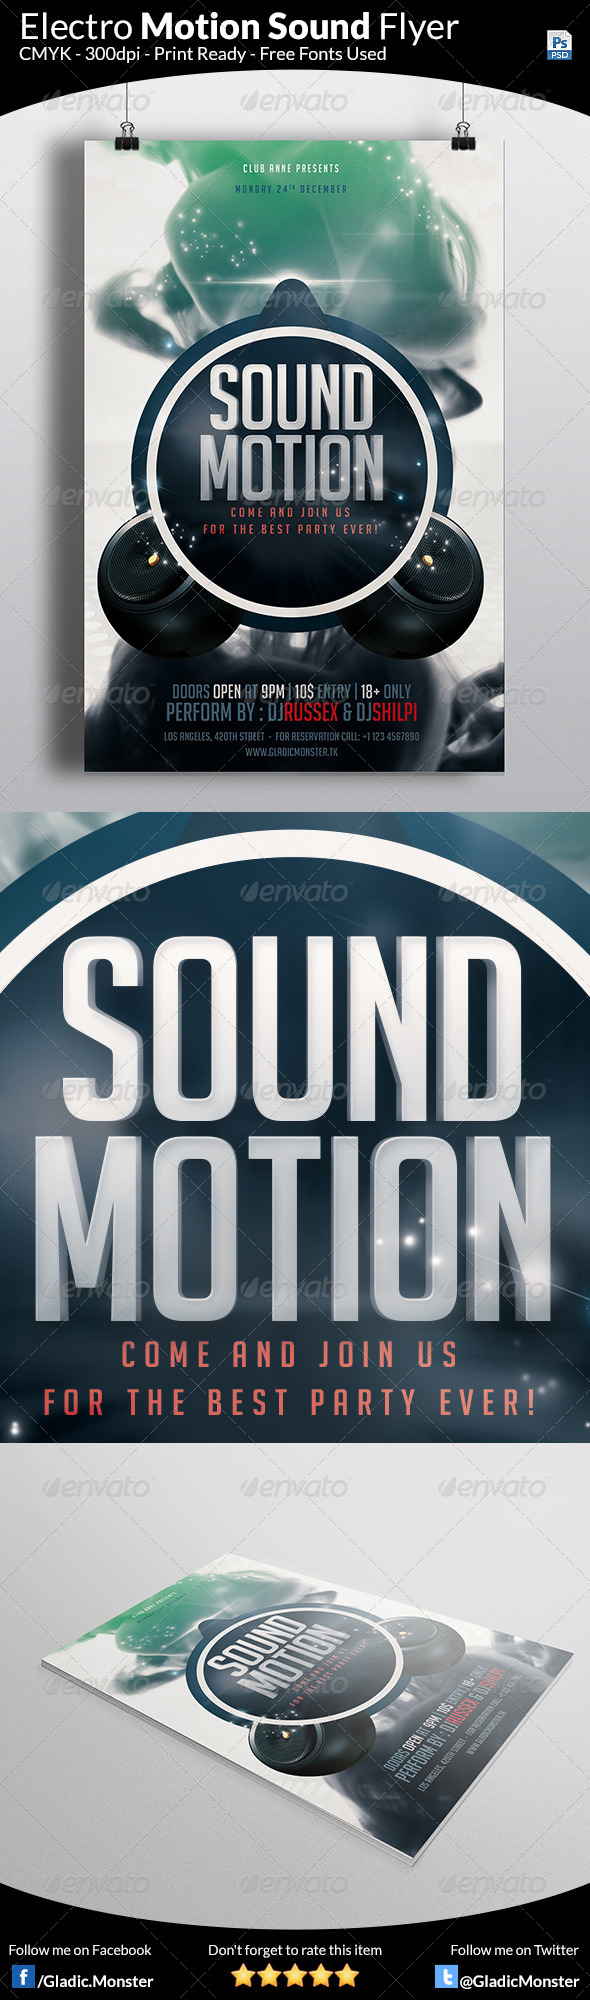 Electro Motion Music Flyer - Clubs & Parties Events